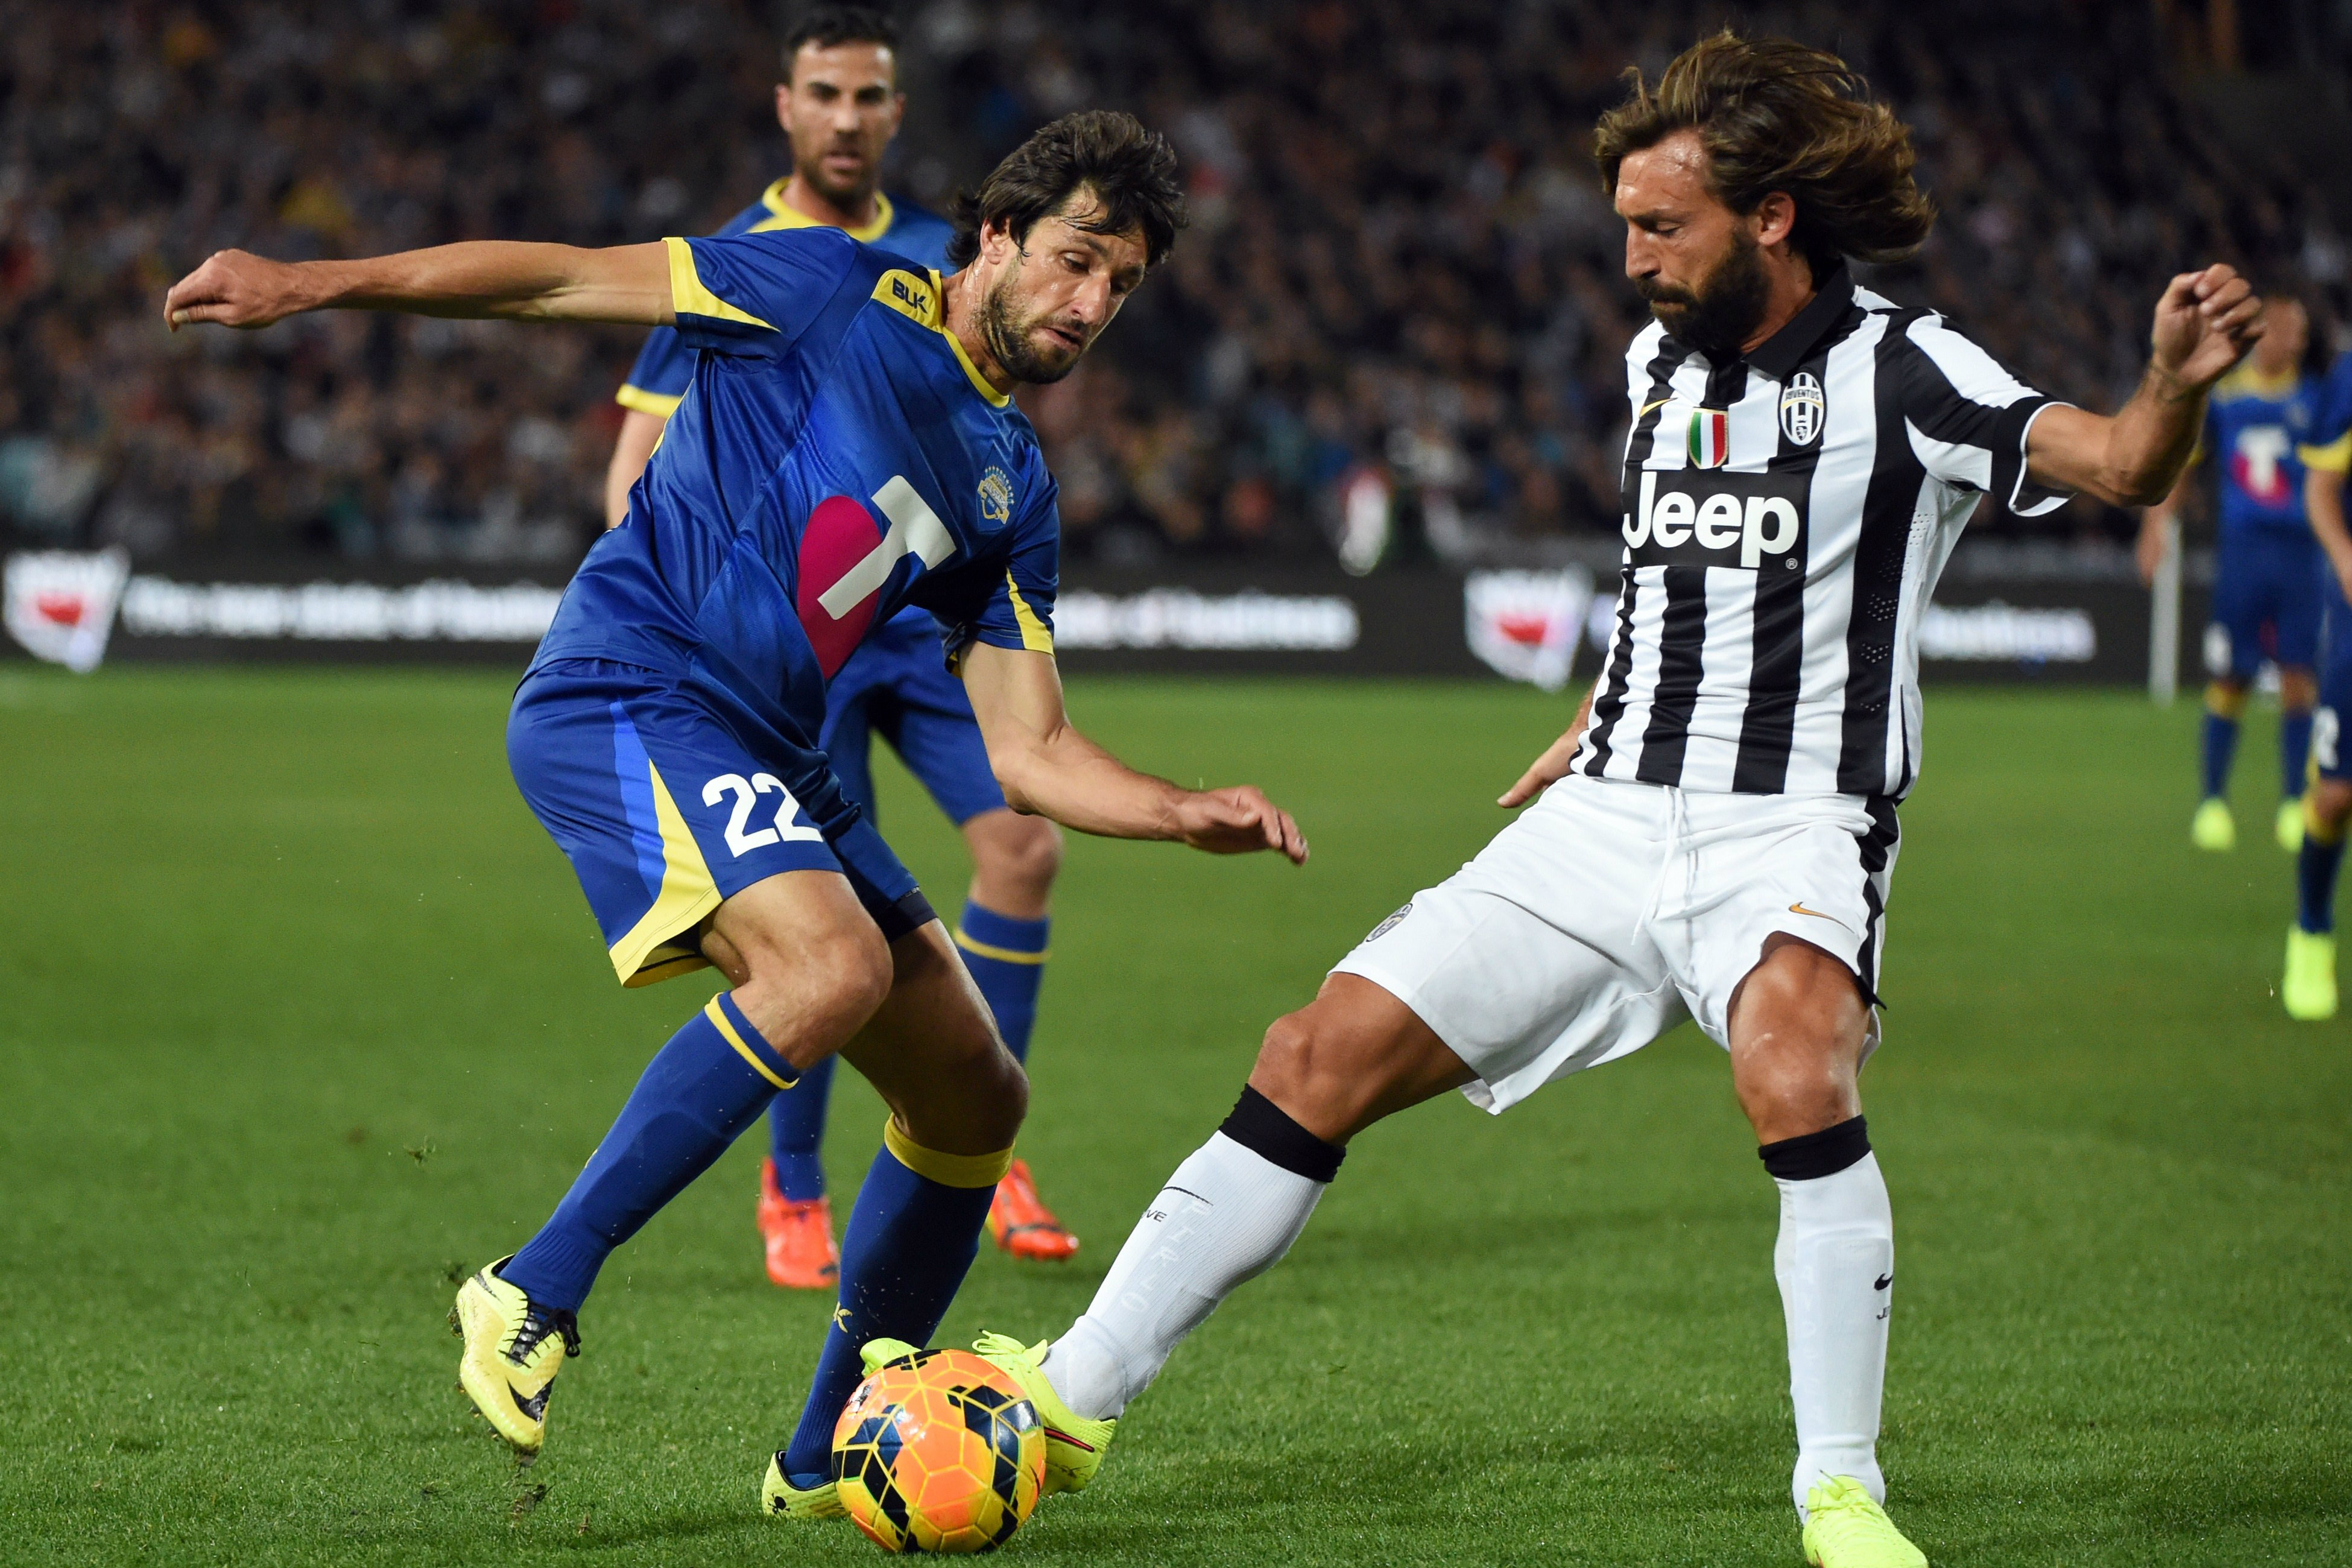 Pirlo tackles Del Piero